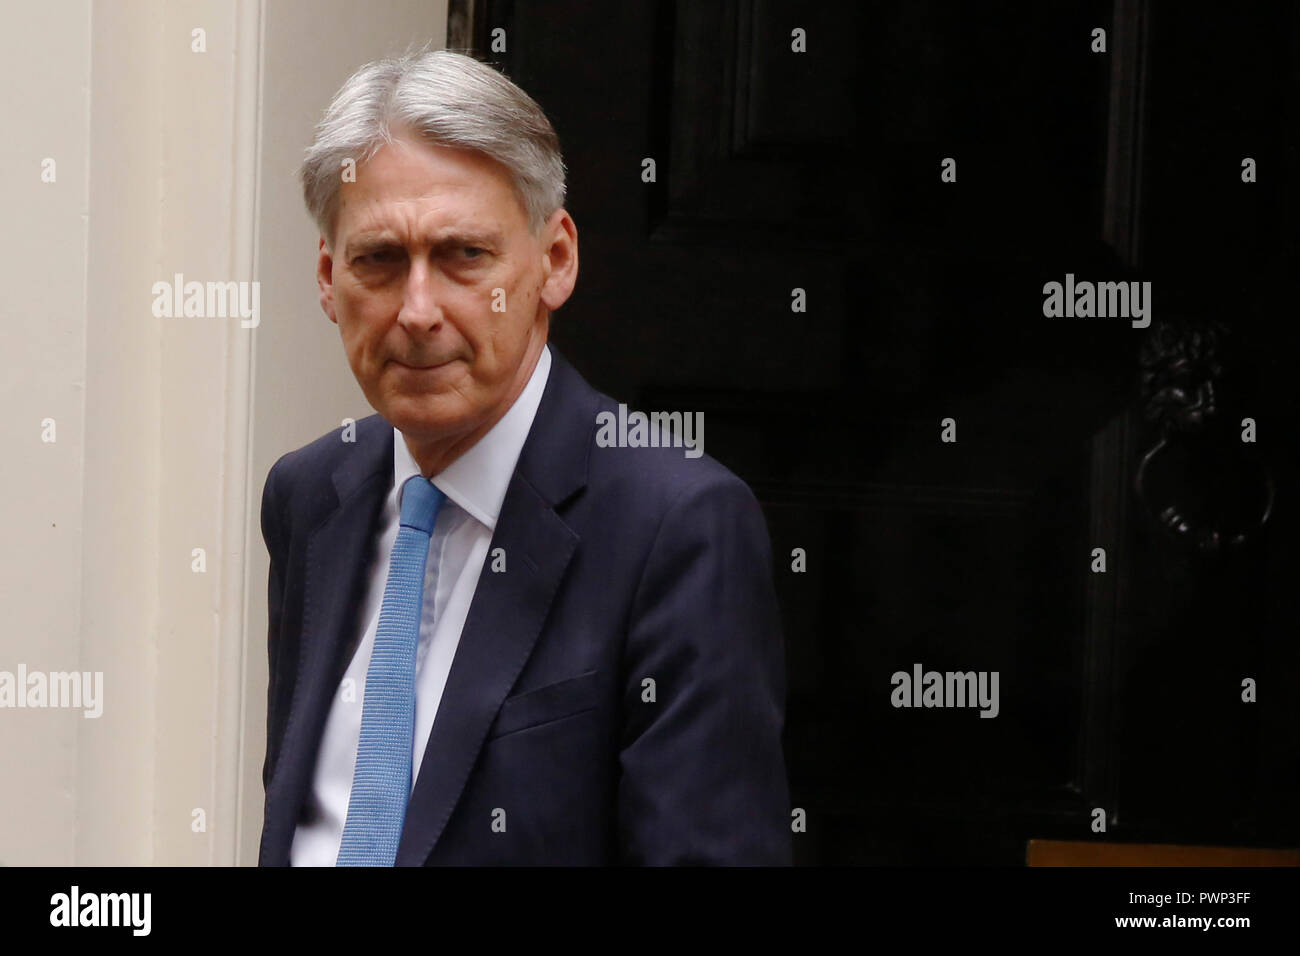 London, UK. 17th Oct, 2018. Britain's Chancellor of the Exchequer Philip Hammond leaves, Downing Street ahead of Prime Ministers Questions in London, Wednesday October 17, 2018. Credit: Luke MacGregor/Alamy Live News Stock Photo